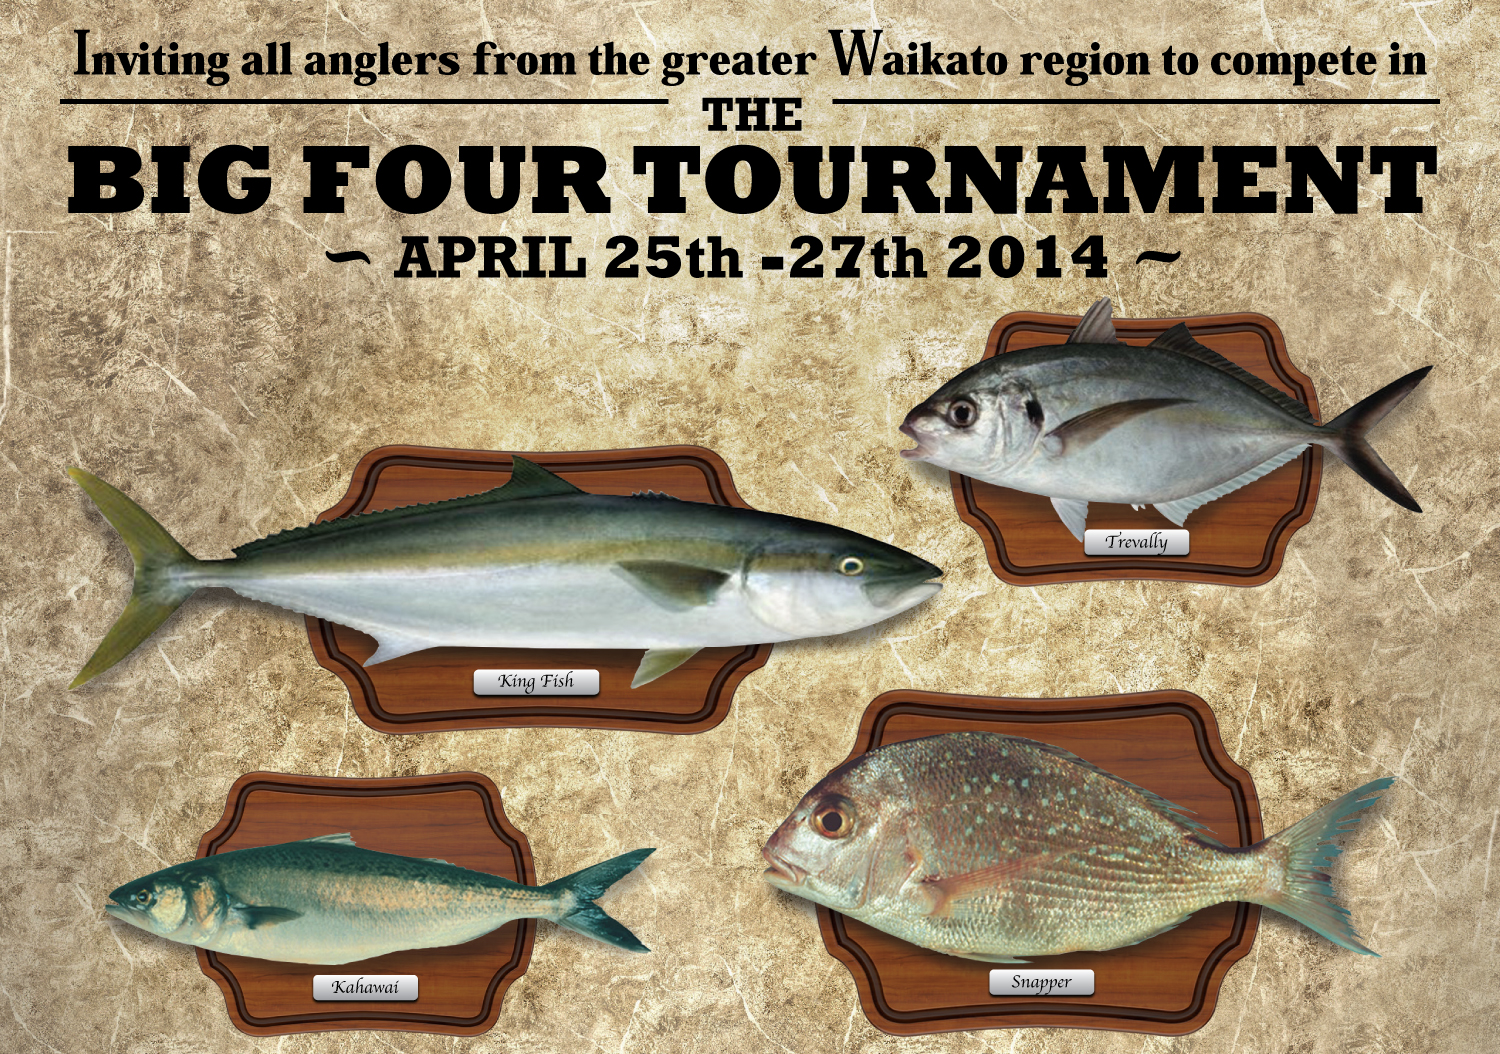 Waikato Sports Fishing Club